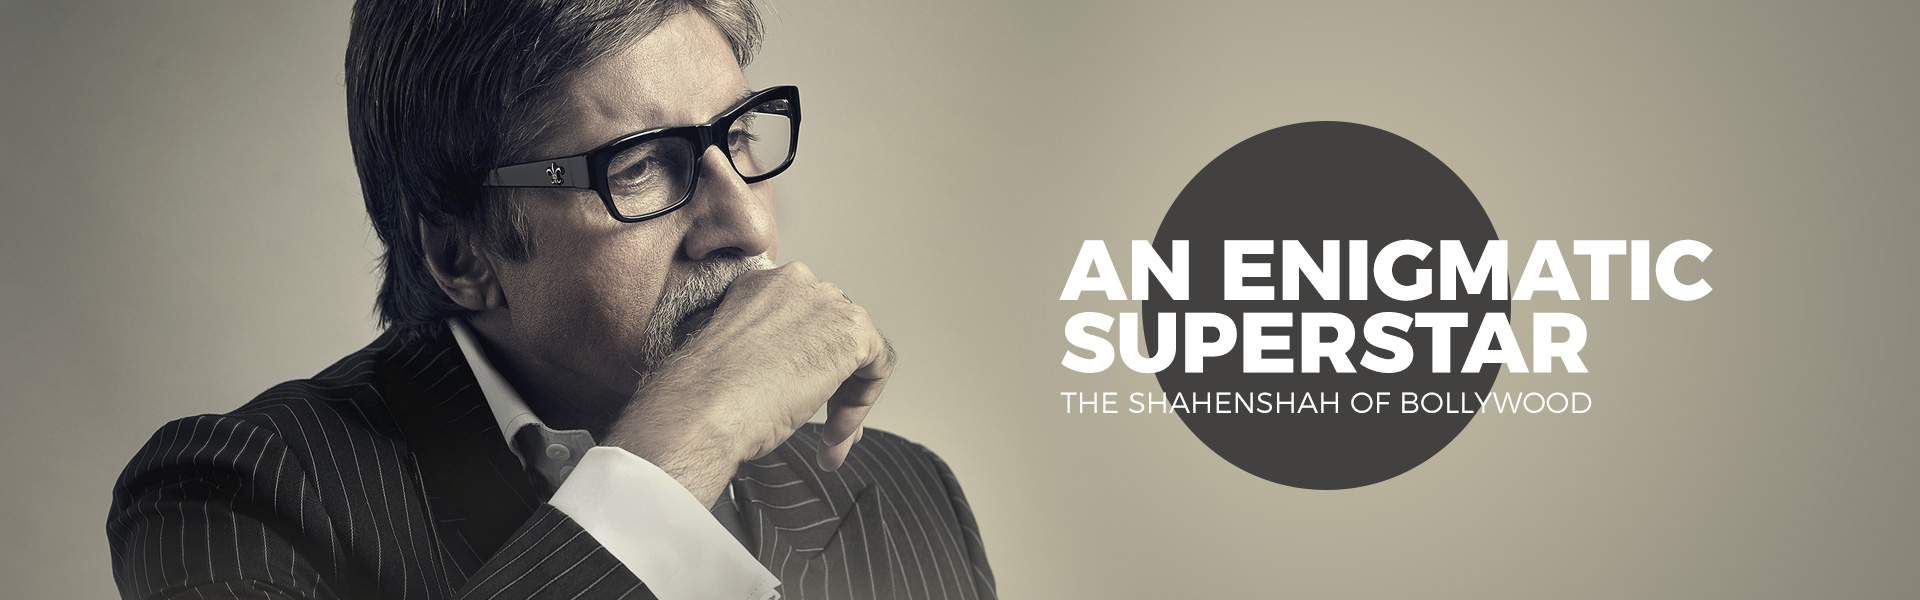 Amitabh Bachchan An enigmatic superstar The Shahenshah of Bollywood